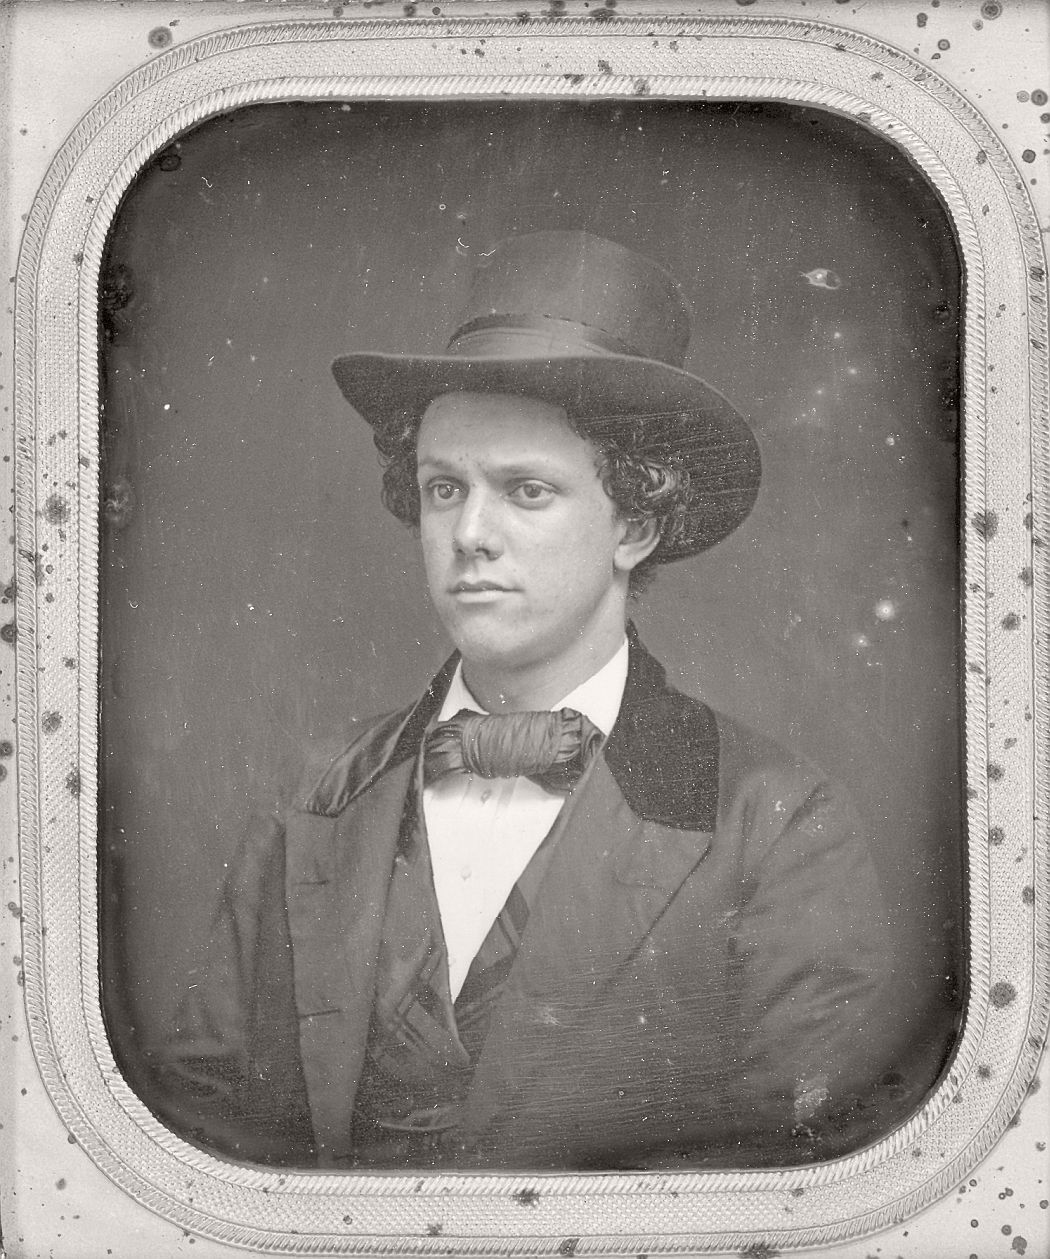 victorian-era-daguerreotype-of-men-in-hat-1850s-xix-century-19